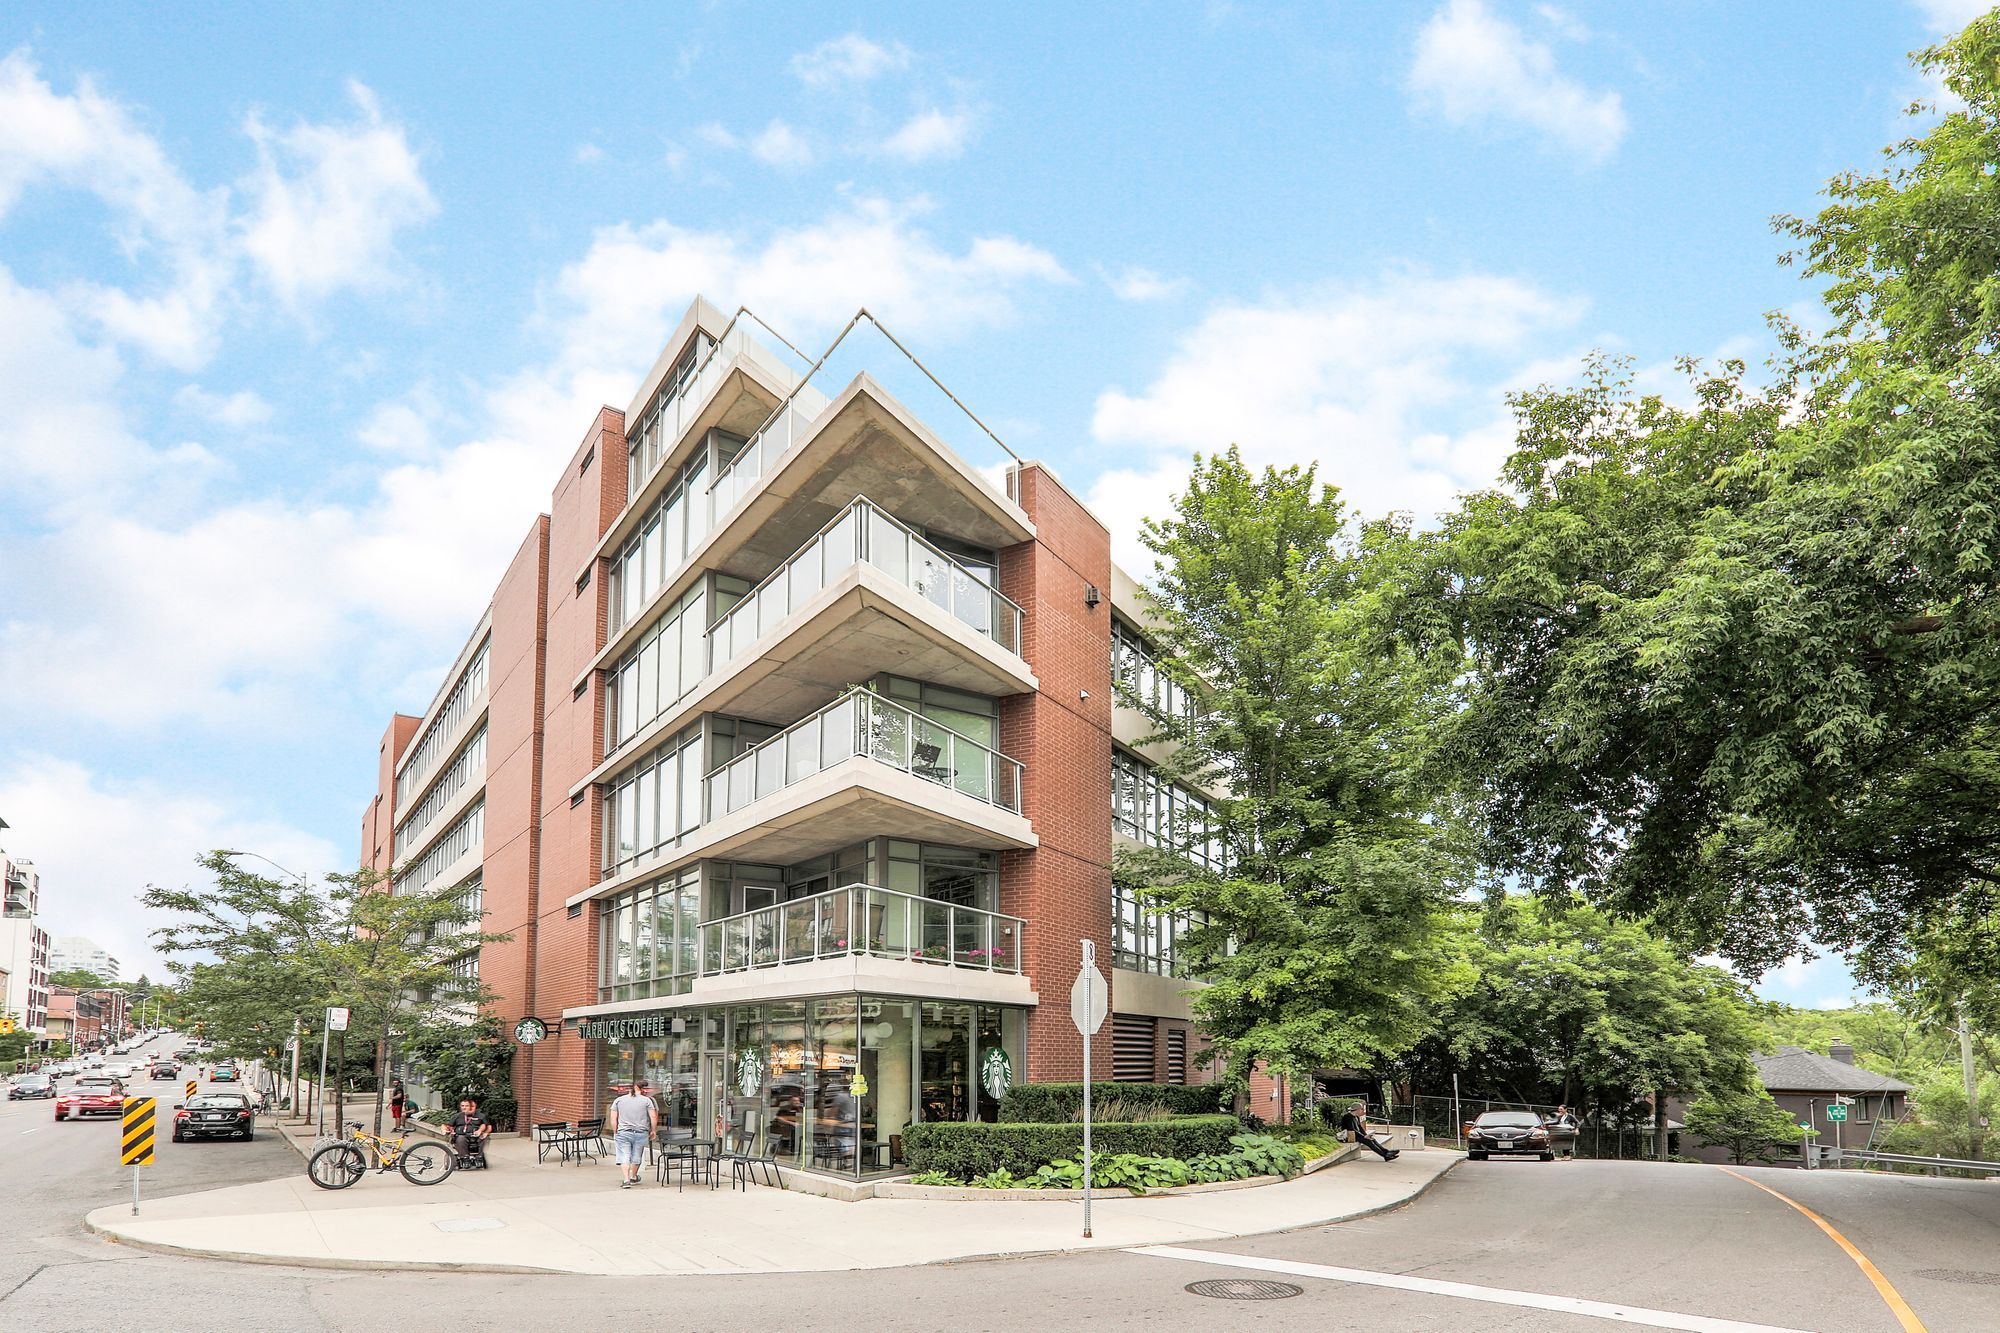 383 Ellis Park Rd. This condo townhouse at Home Condominium is located in  West End, Toronto - image #1 of 5 by Strata.ca